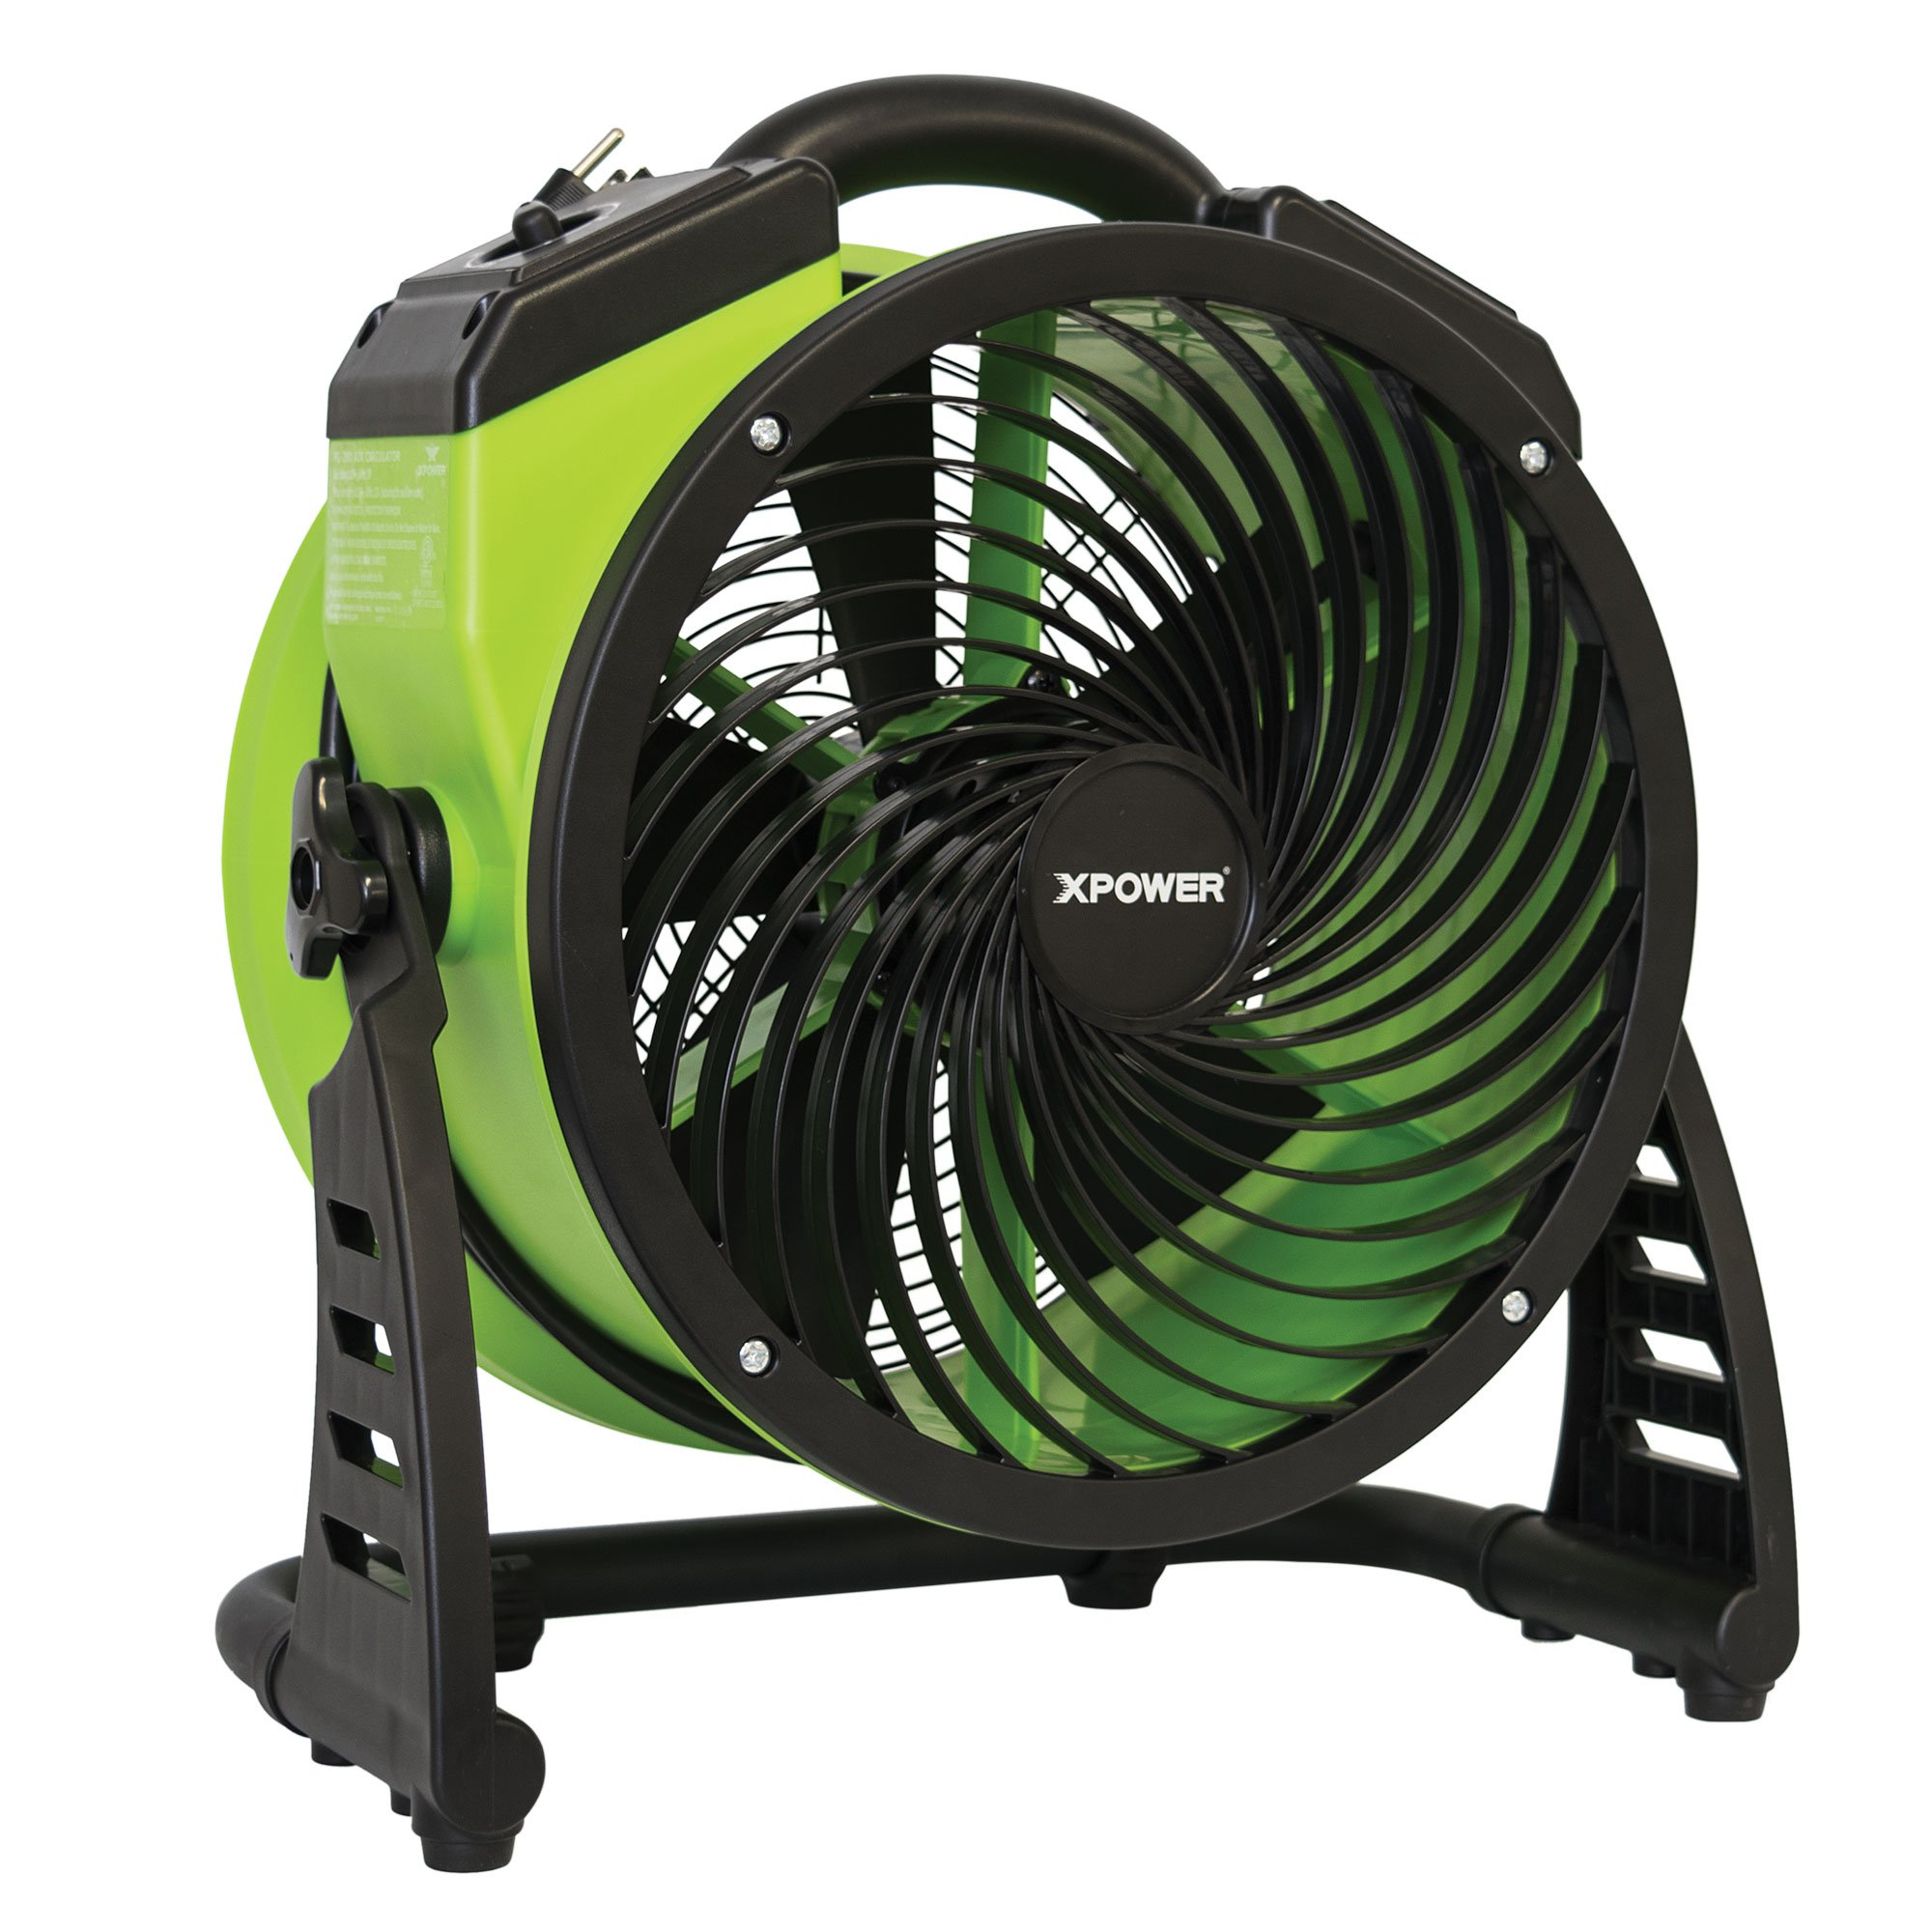 XPOWER FC-200 Heavy Duty Whole Room Air Circulator Fan, Carpet Dryer, Floor Fan, Blower – 13″ Diameter Multipurpose Shop Fan- Green